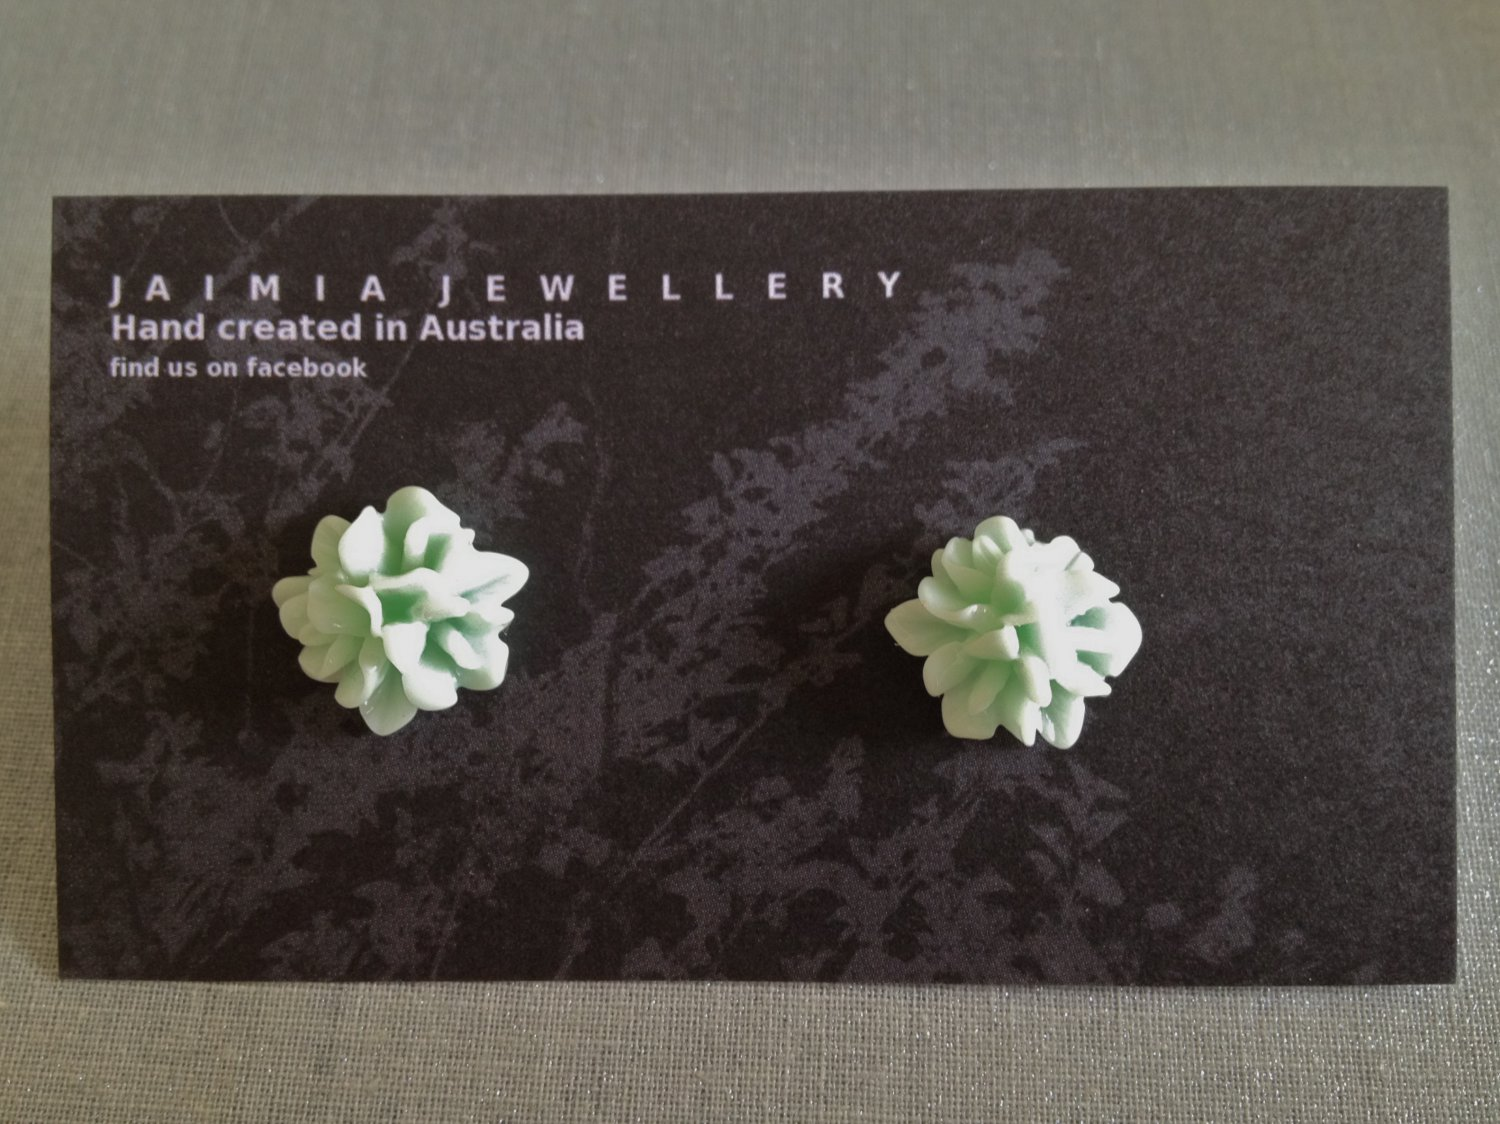 Pastle Green Frost Small Floral Stud Earrings by Jaimia Jewellery